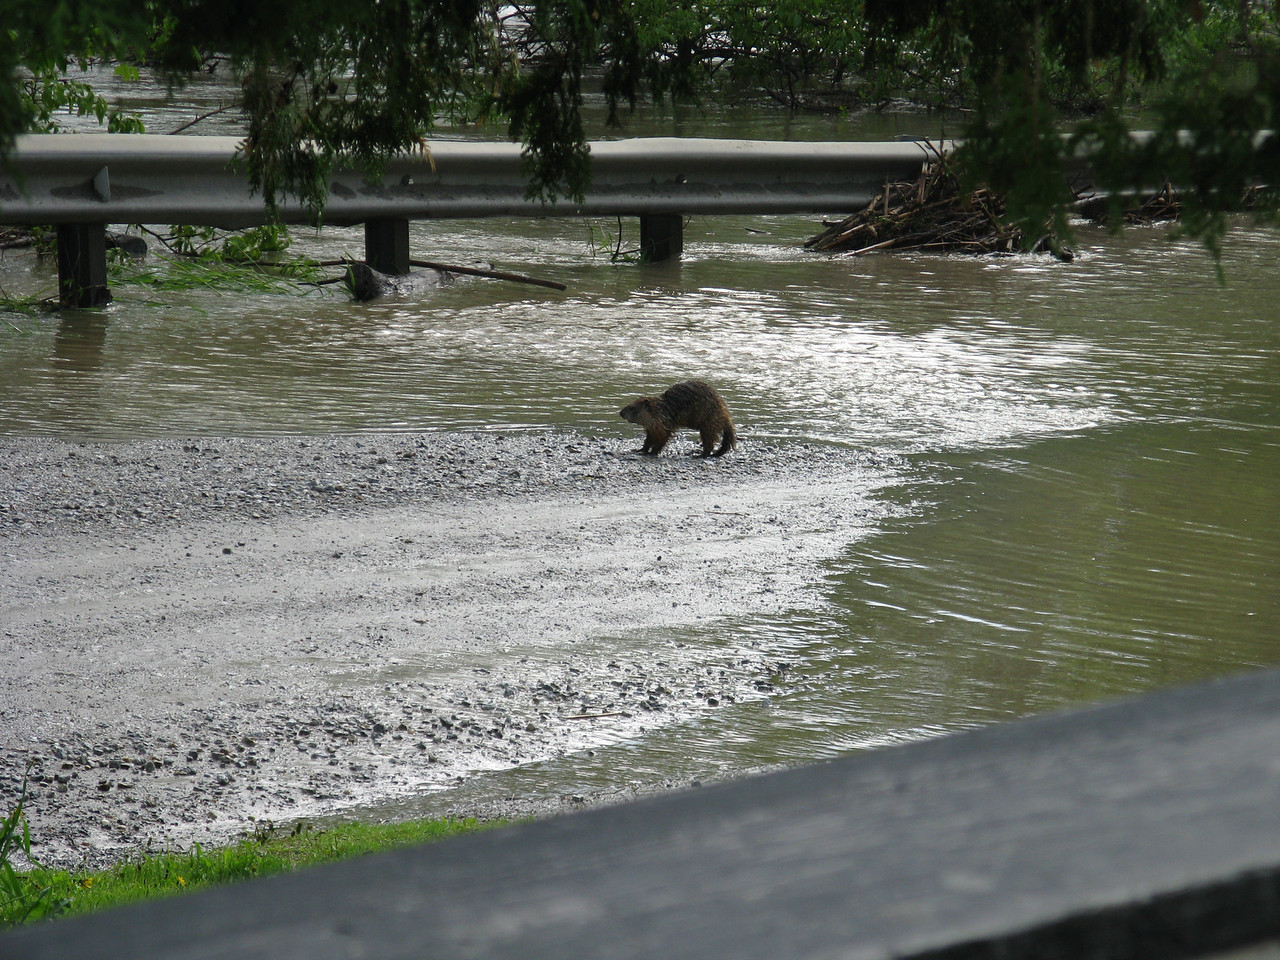 Woodchuck driven out by the flood, exhausted and looking for a place to rest. Not scared of us at all.